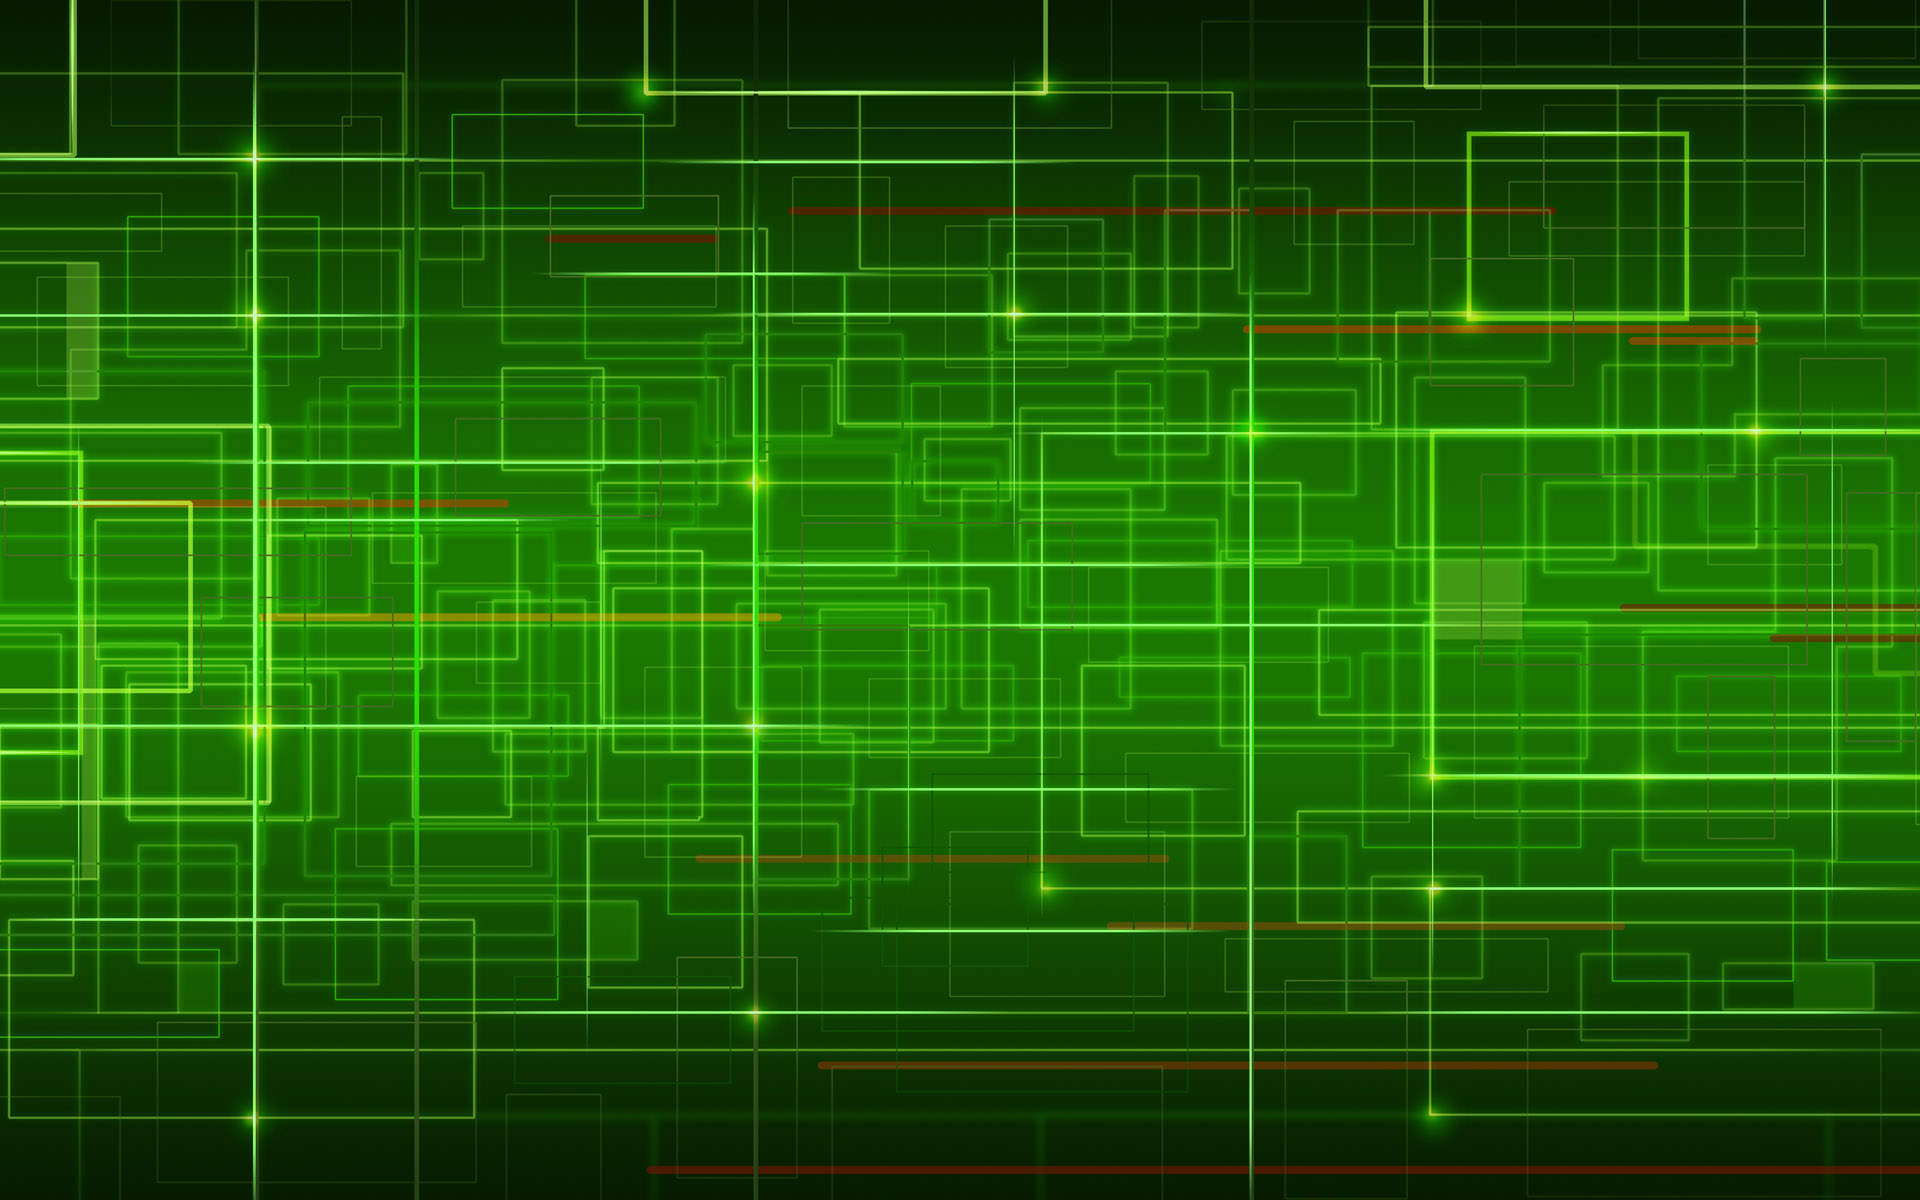 Image Network In Green Wallpapers And Stock Photos